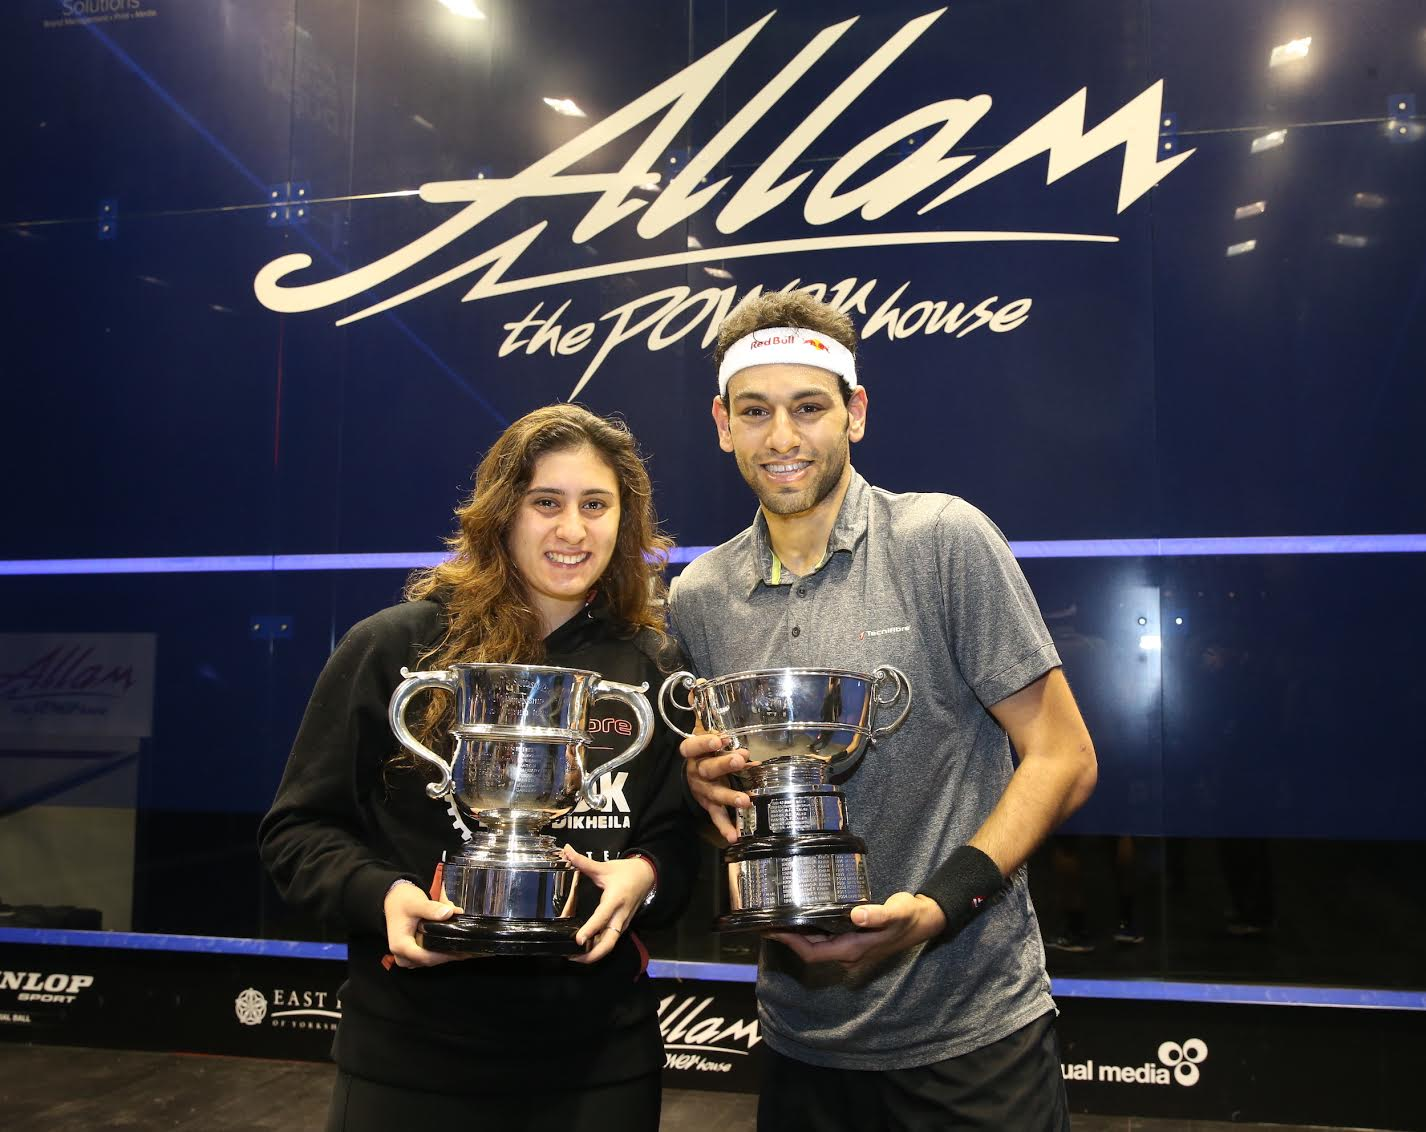 The 2016 champions Mohamed Elshorbagy and Nour El Sherbini, both from Egypt